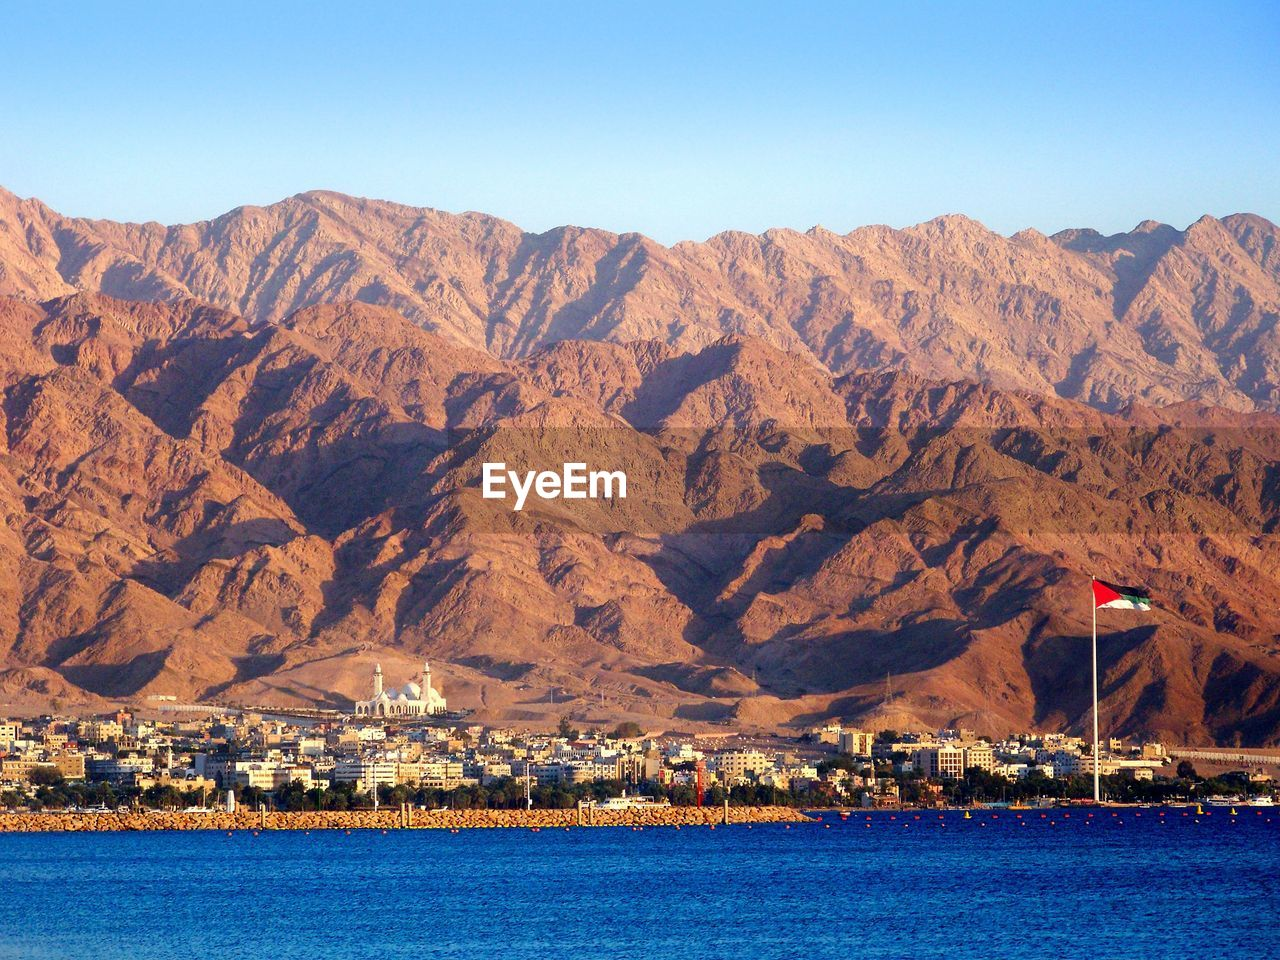 Jordanian Flag In City By Sea Against Mountains